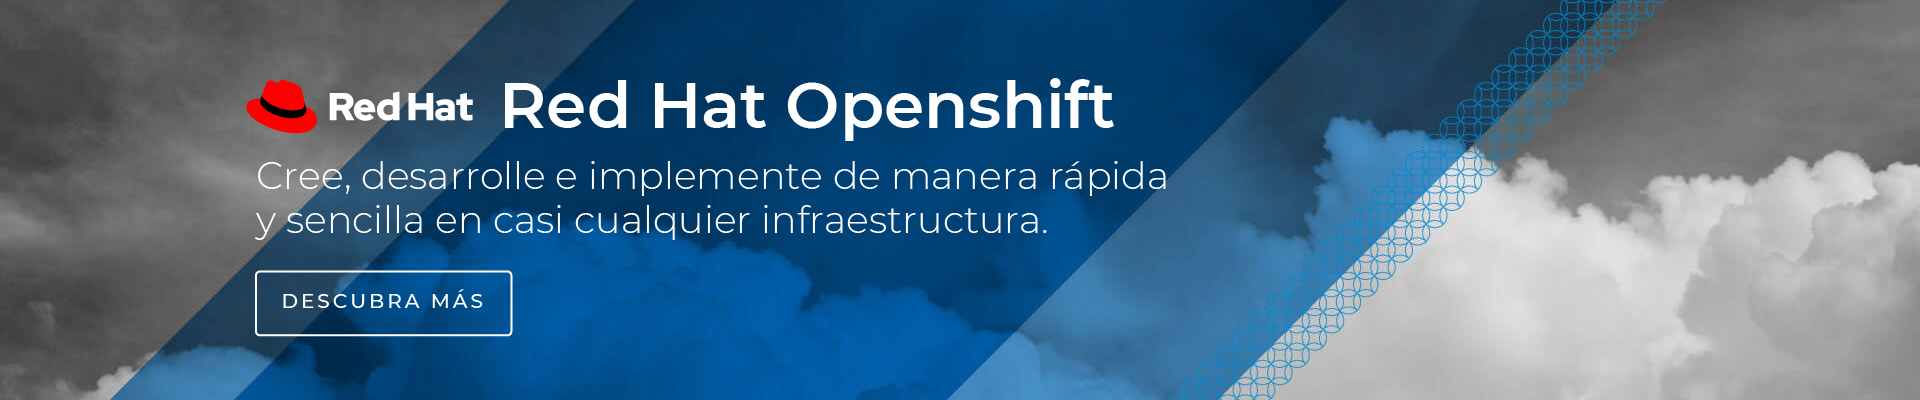 Red Hat OpenShift